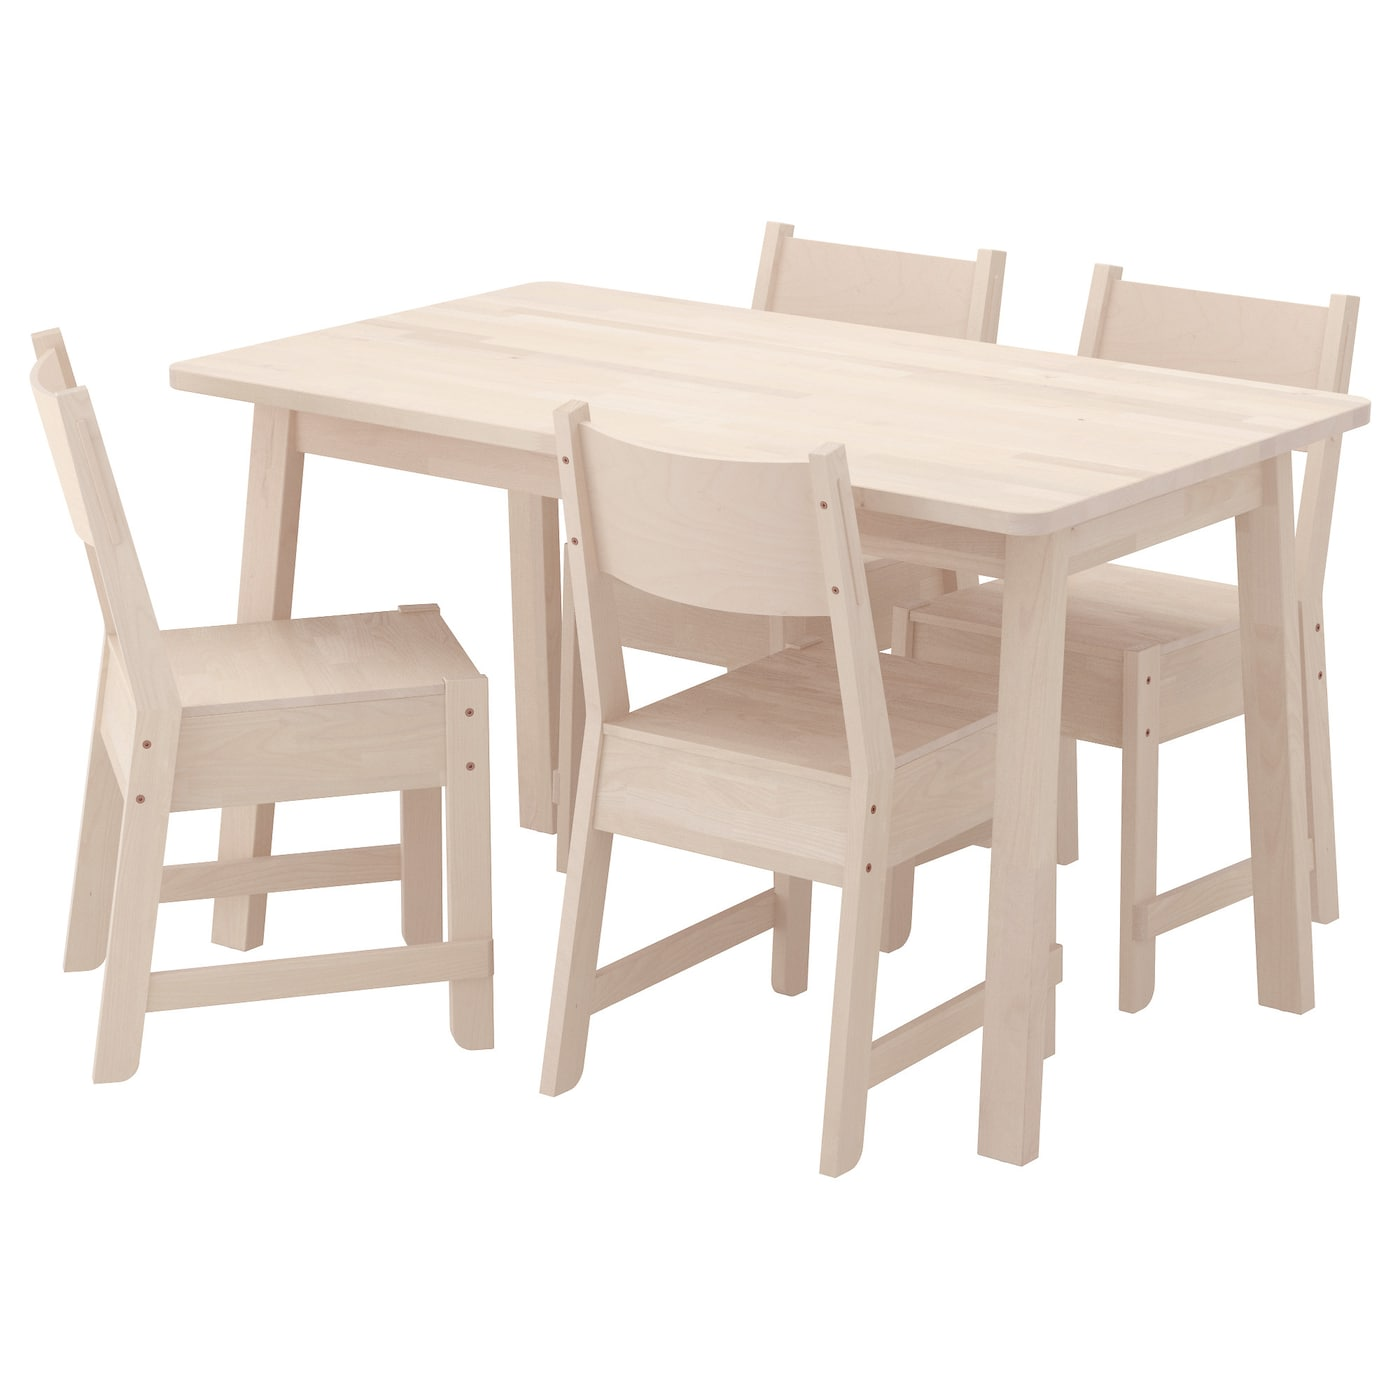 Norr ker norr ker table and 4 chairs white birch white birch 125 cm ikea - Birch kitchen table ...